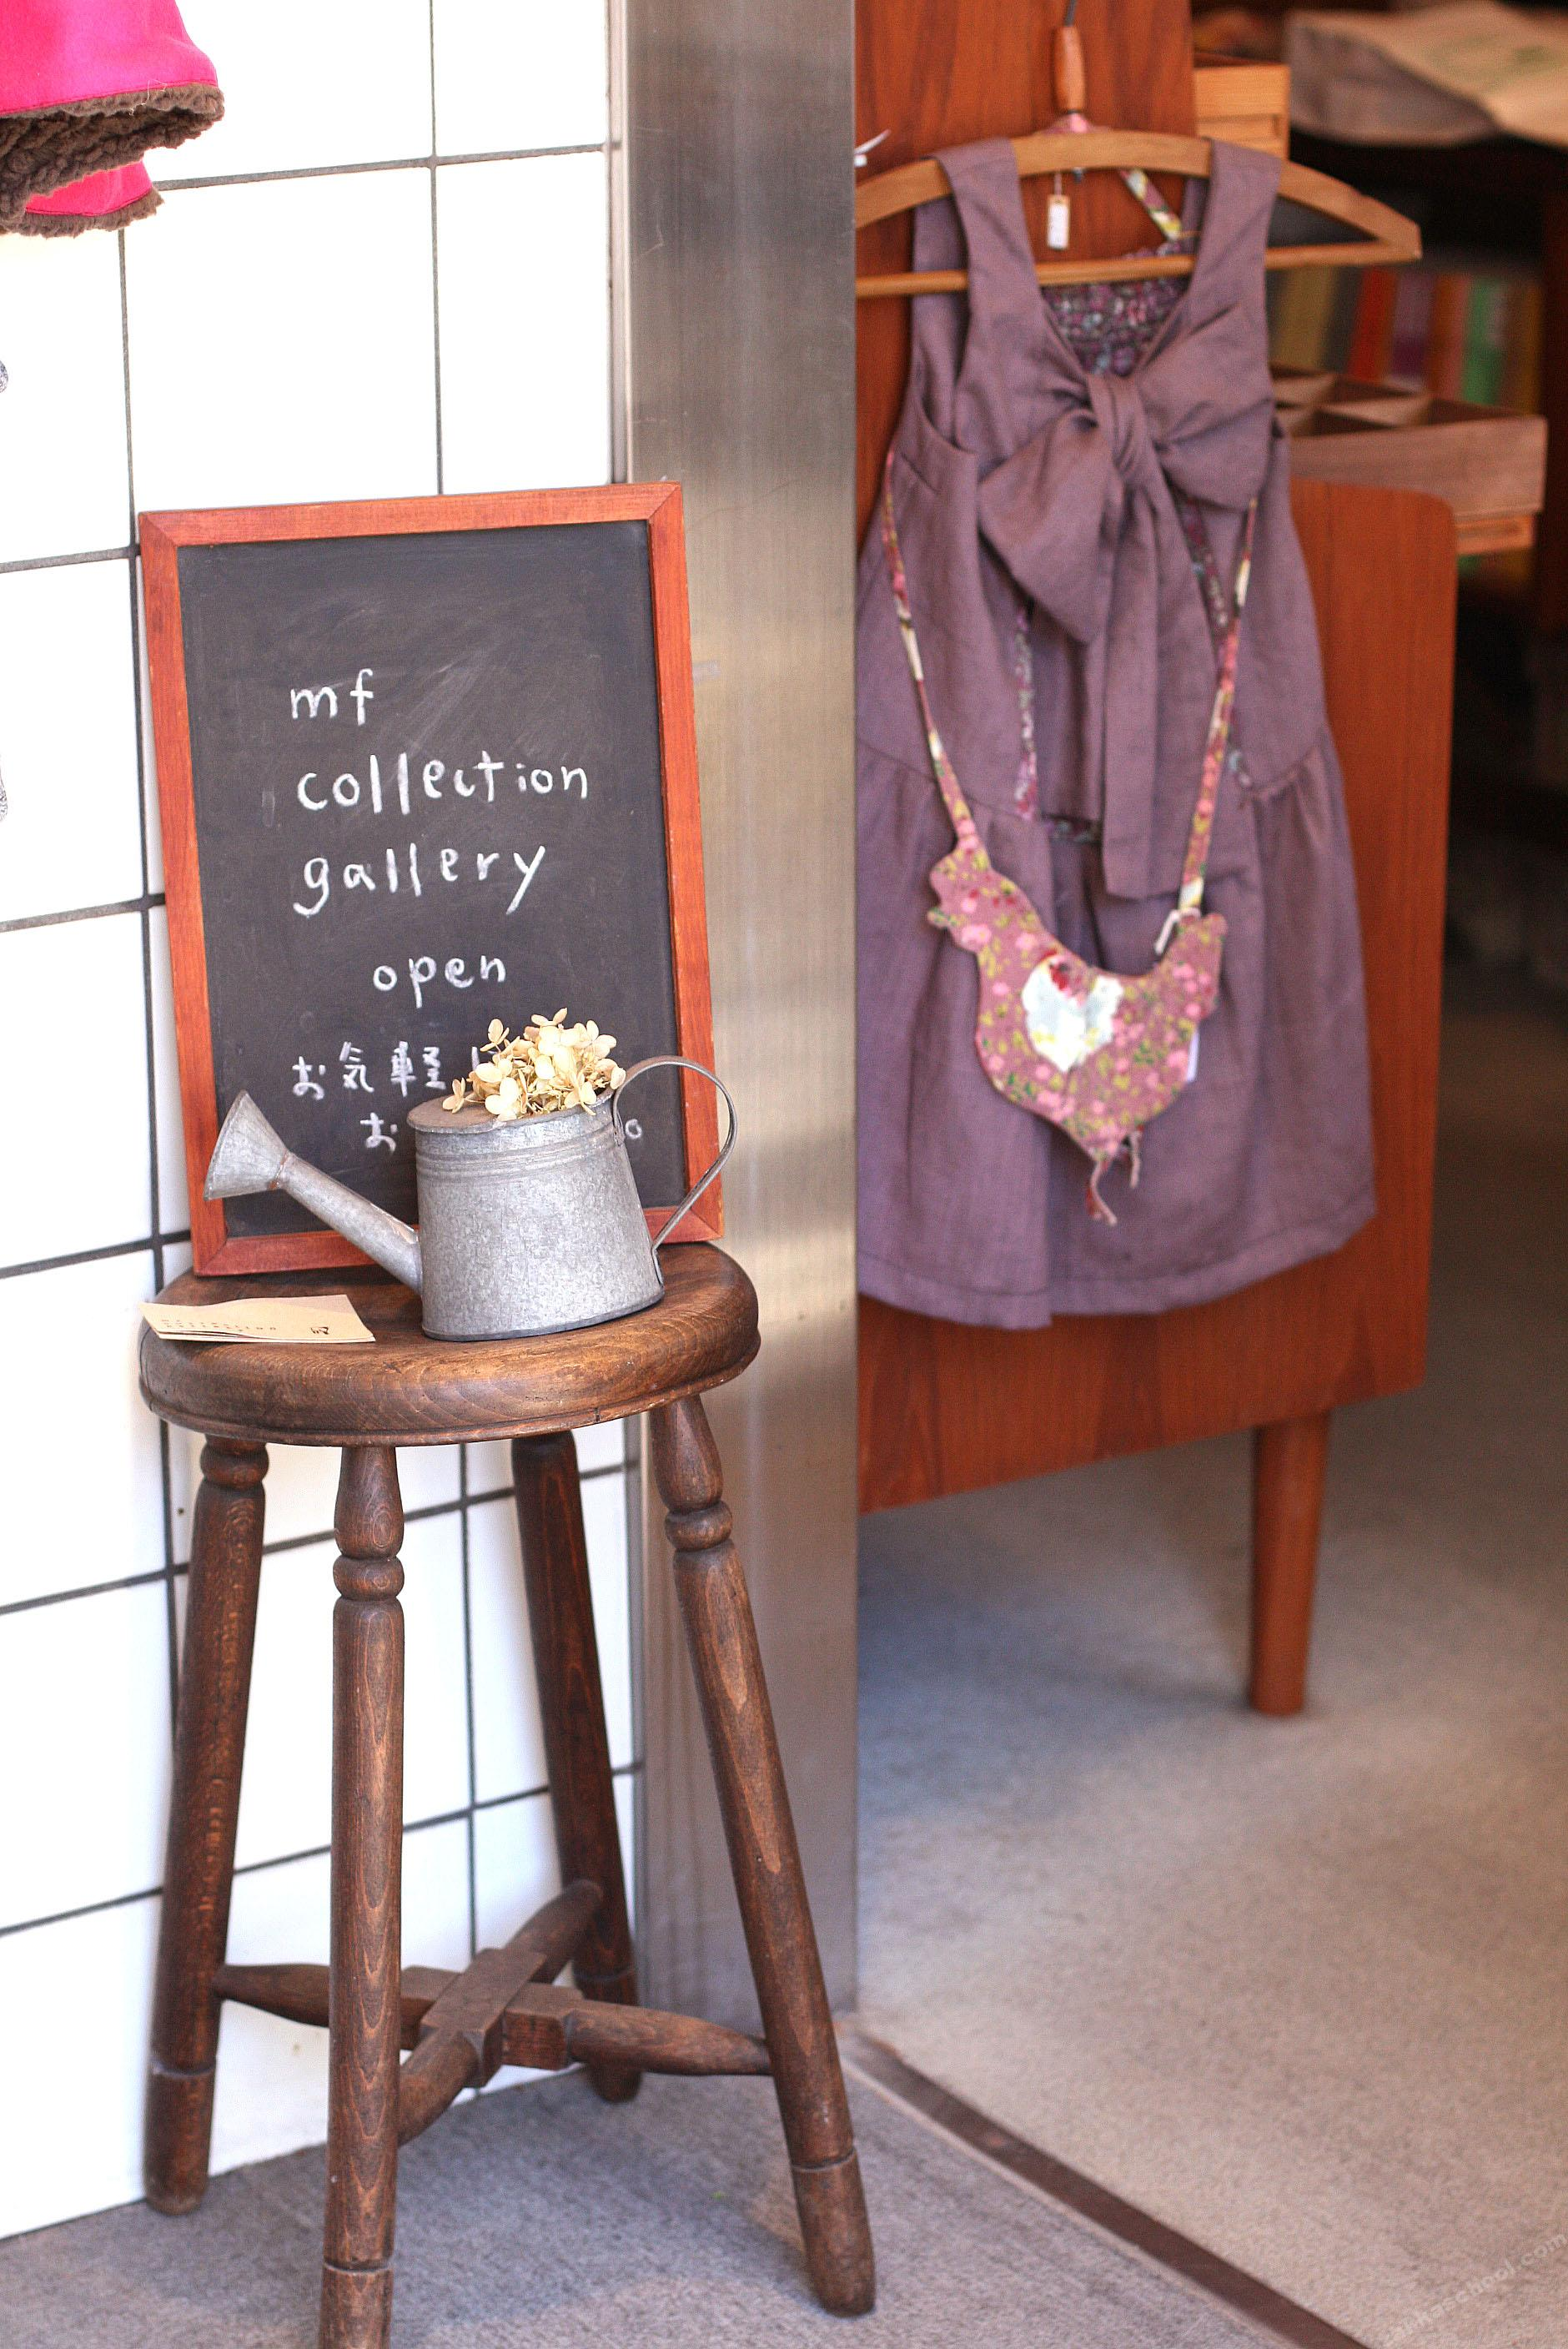 mfcollectiongallery店頭